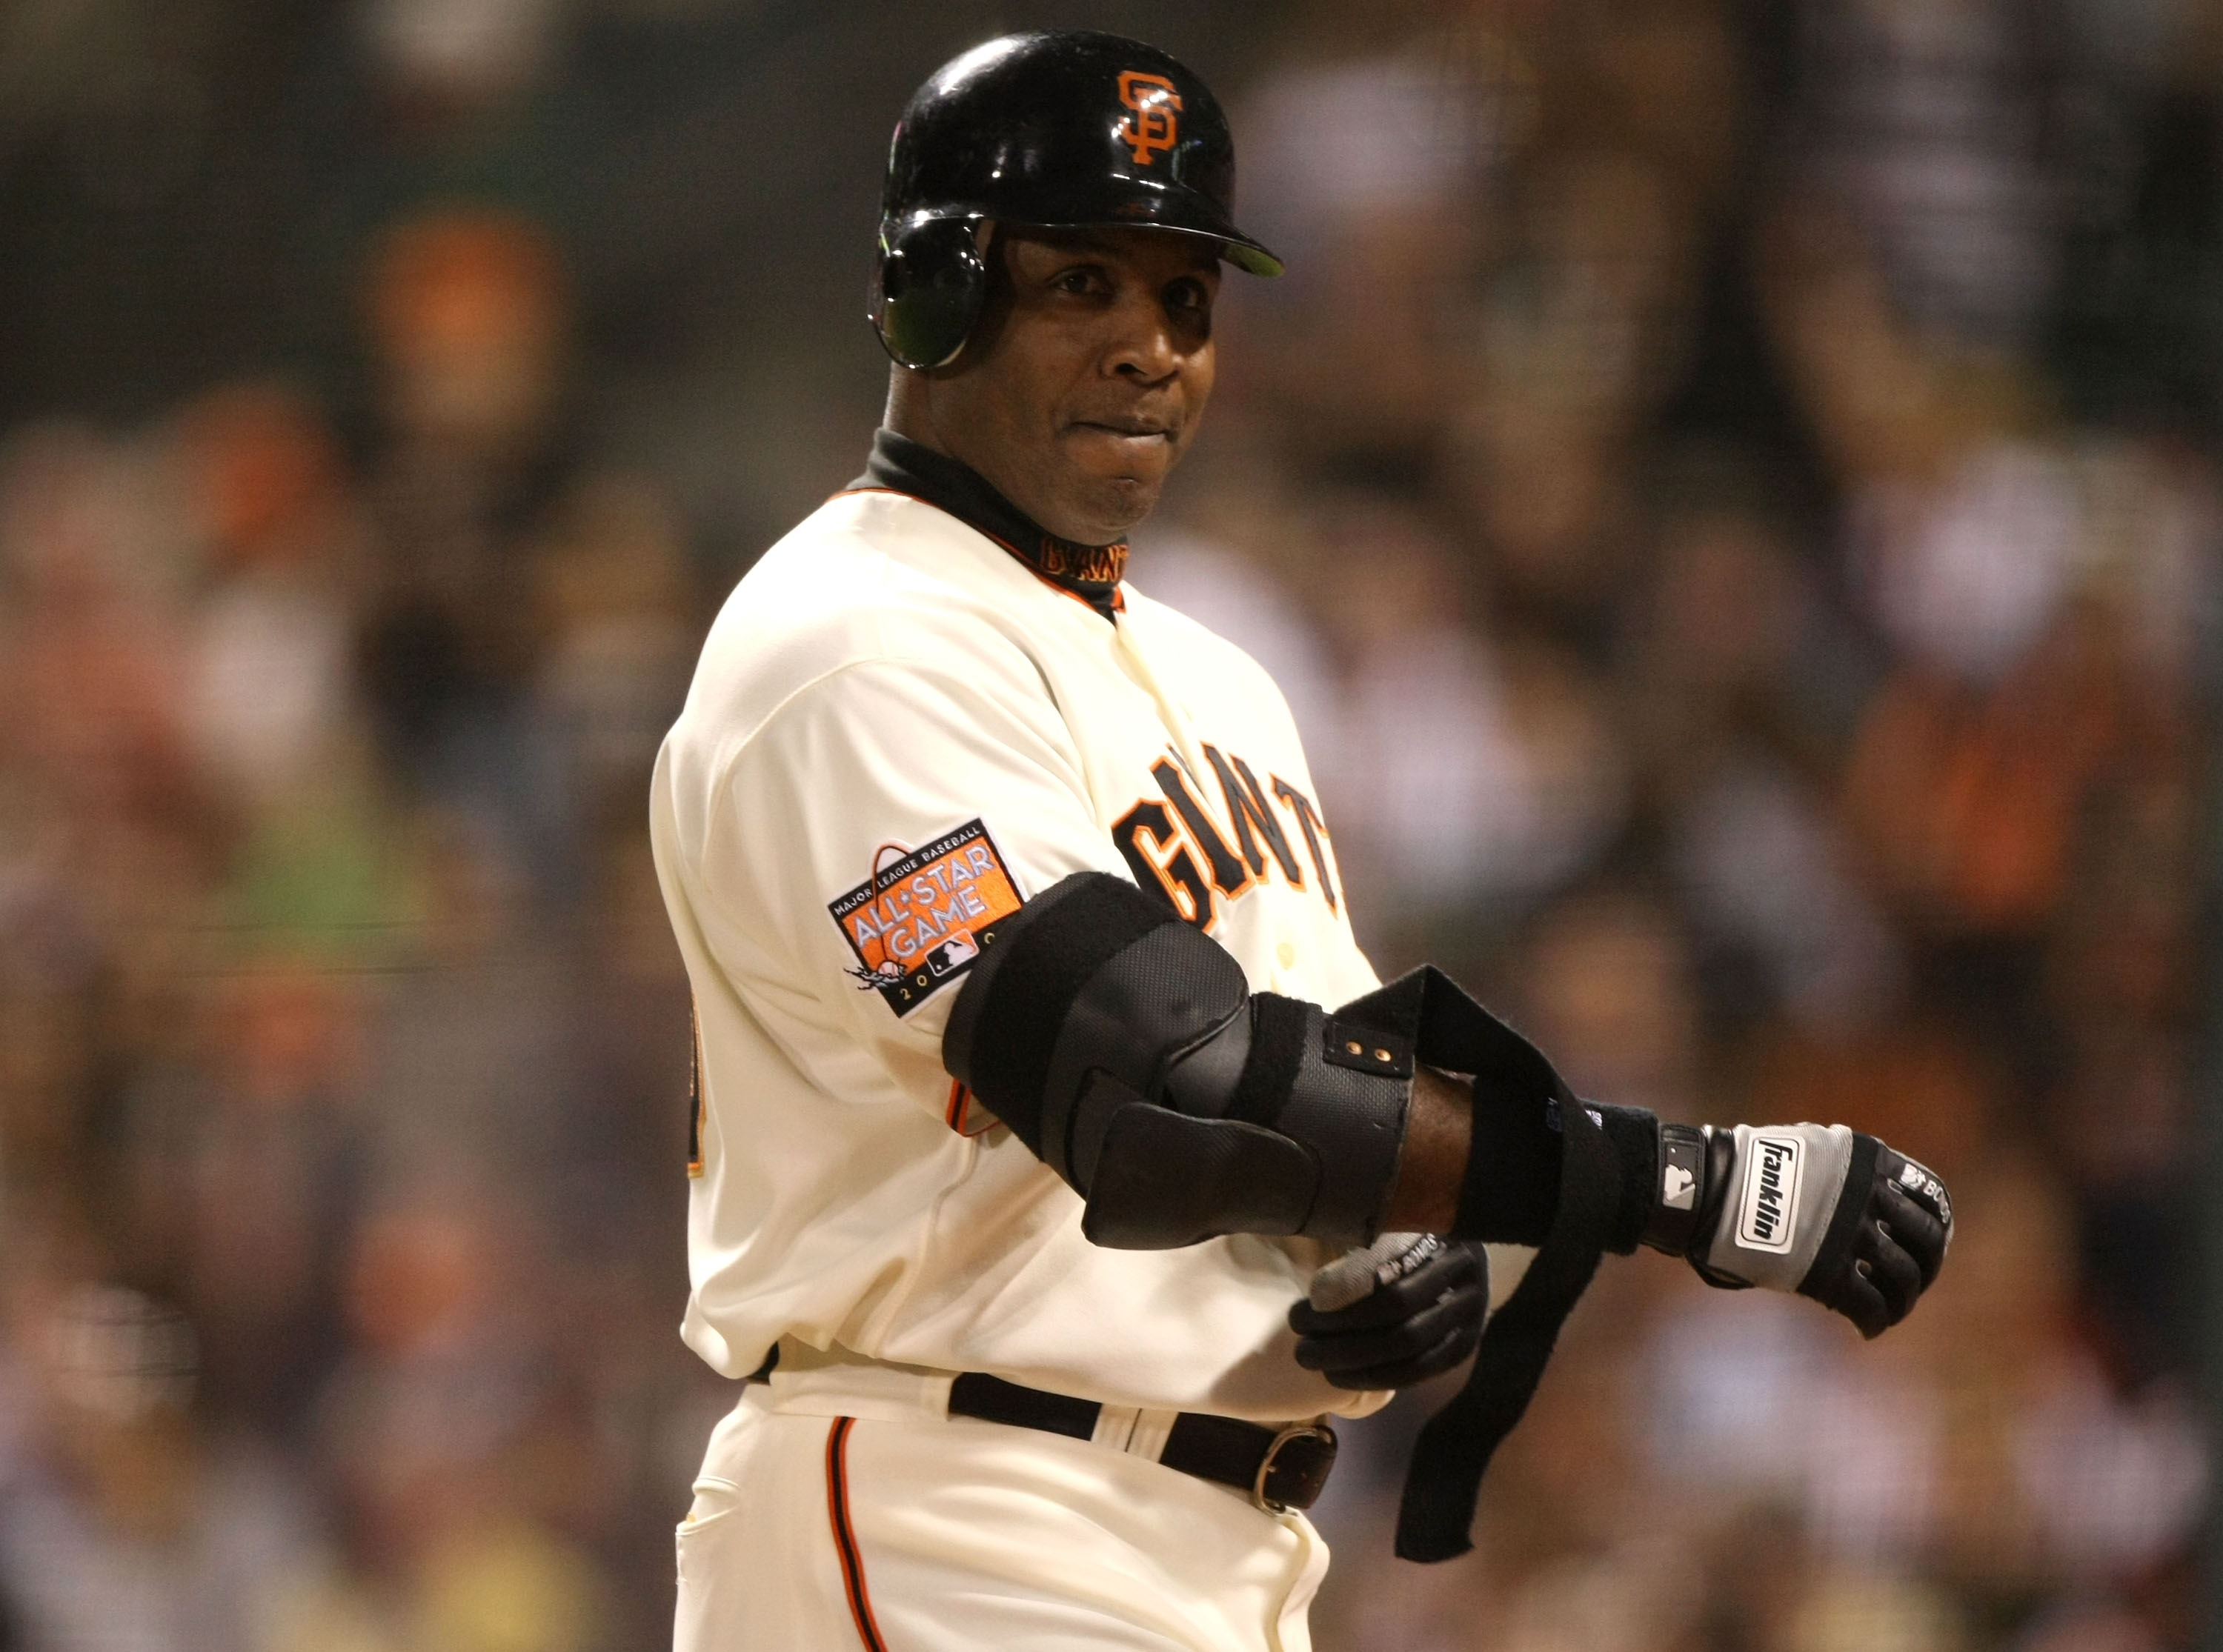 SAN FRANCISCO - SEPTEMBER 26:  Barry Bonds #25 of the San Francisco Giants looks on during his game against the San Diego Padres during a Major League Baseball game on September 26, 2007 at AT&T Park in San Francisco, California.  (Photo by Jed Jacobsohn/